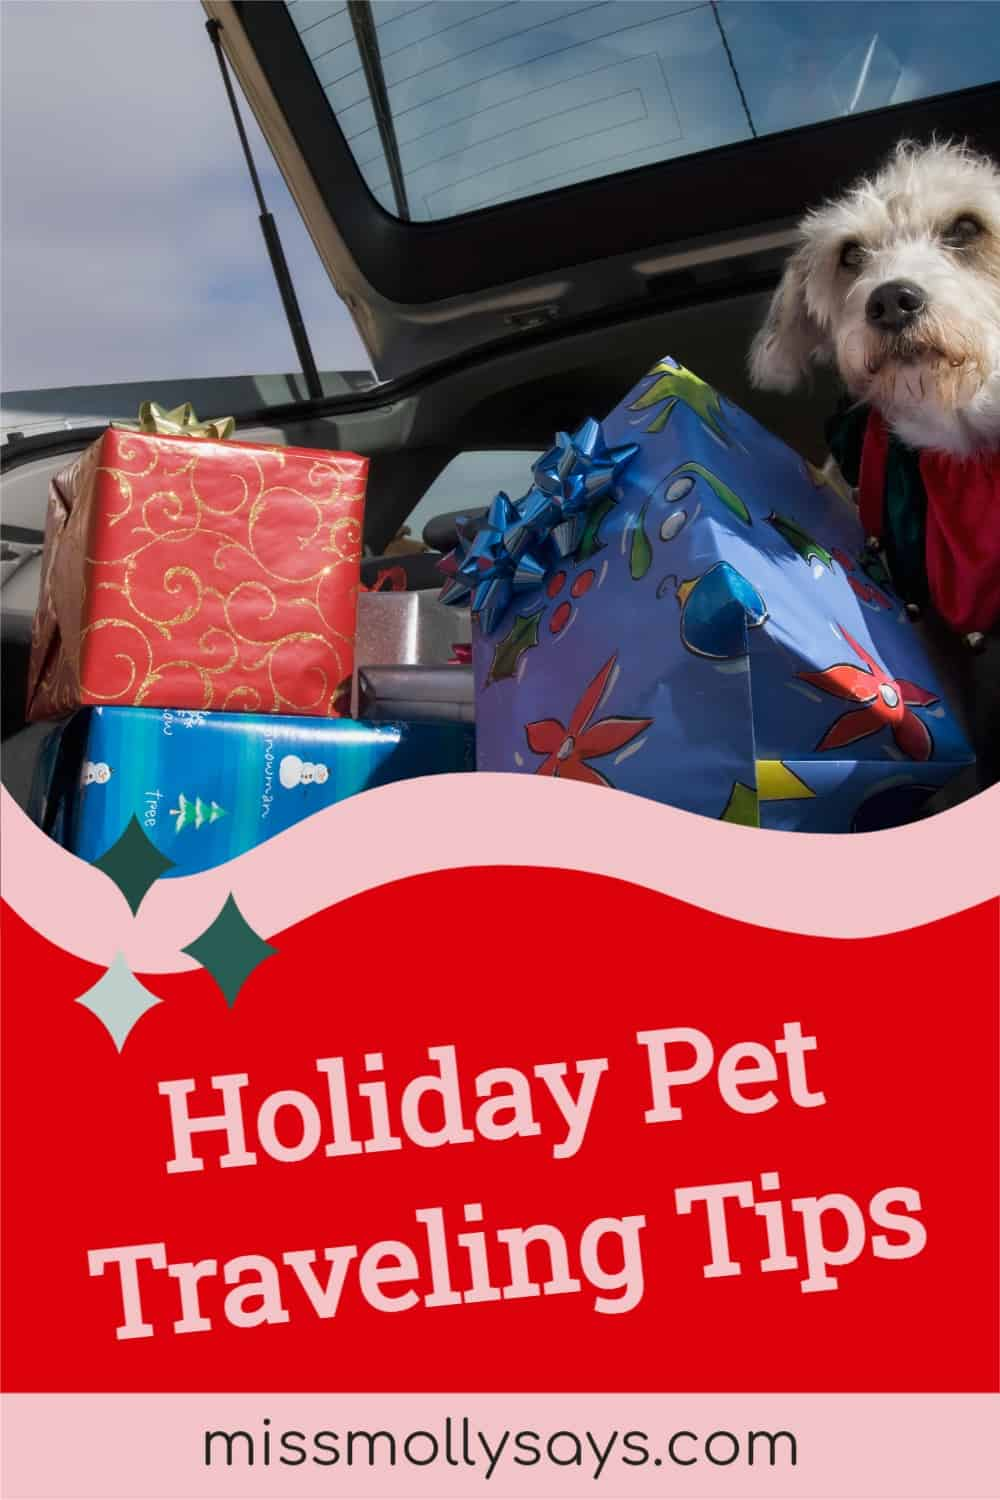 Holiday Pet Traveling Tips